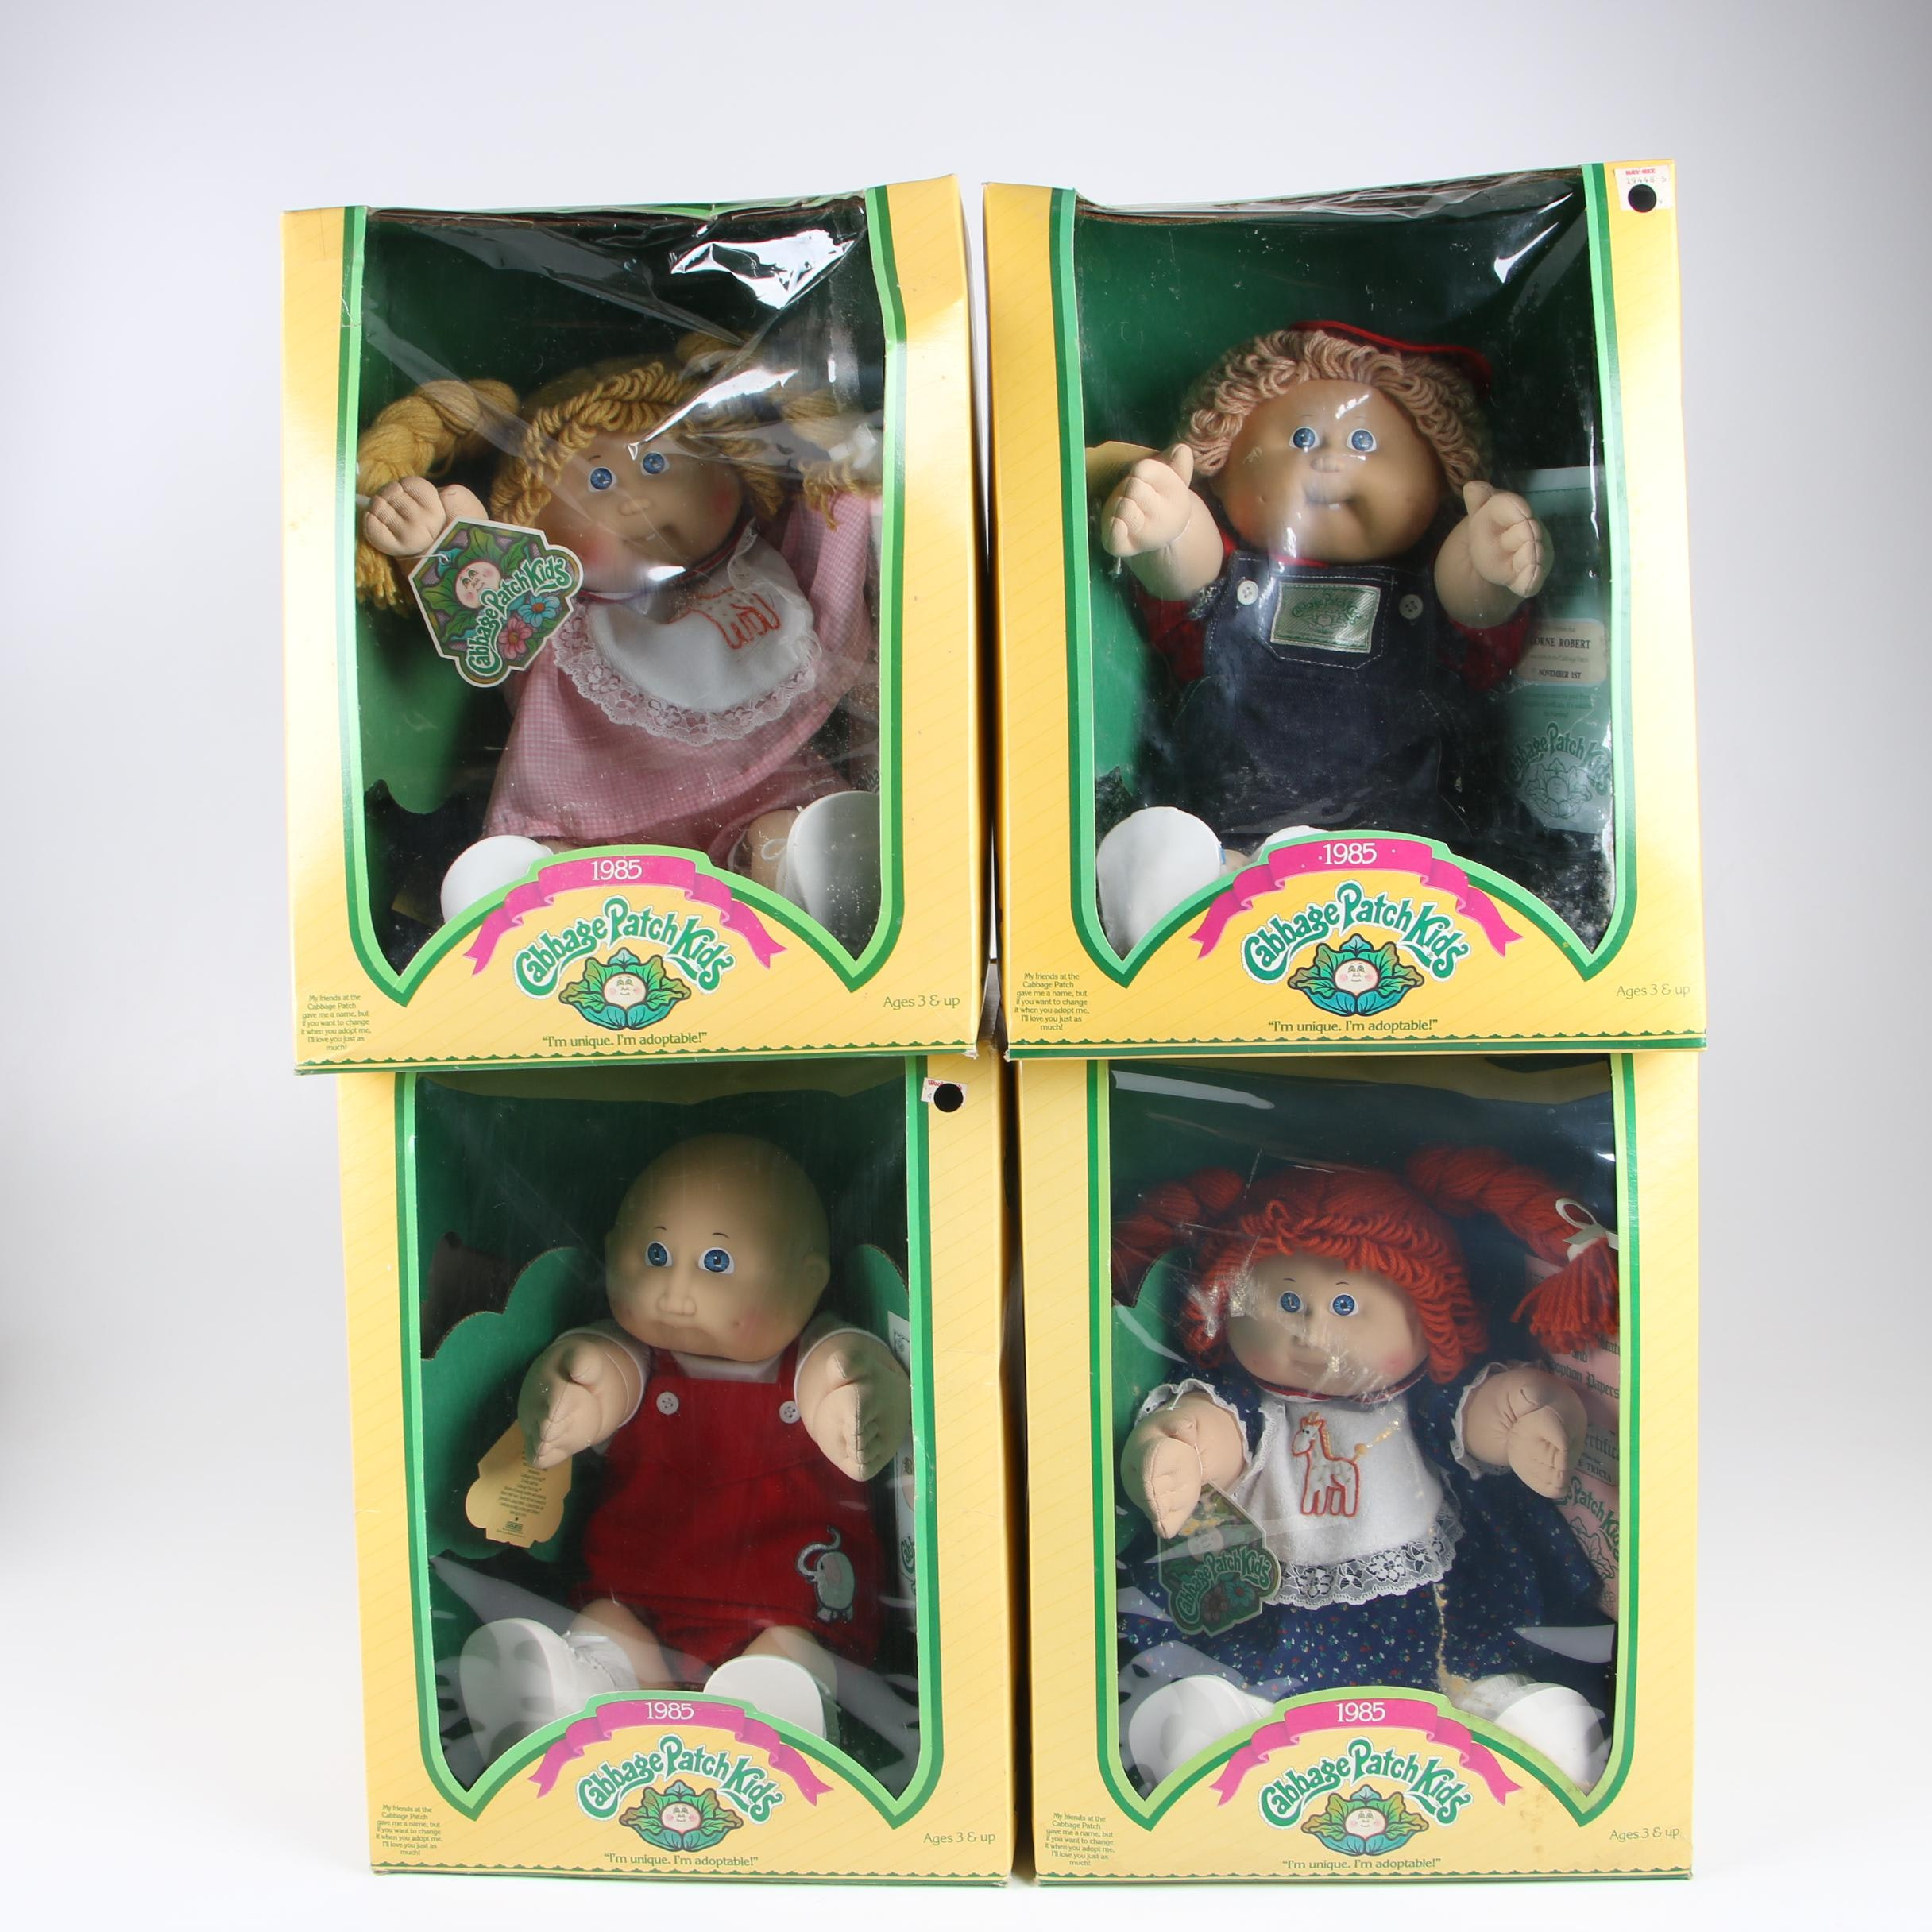 Coleco Cabbage Patch Kids Dolls, 1985